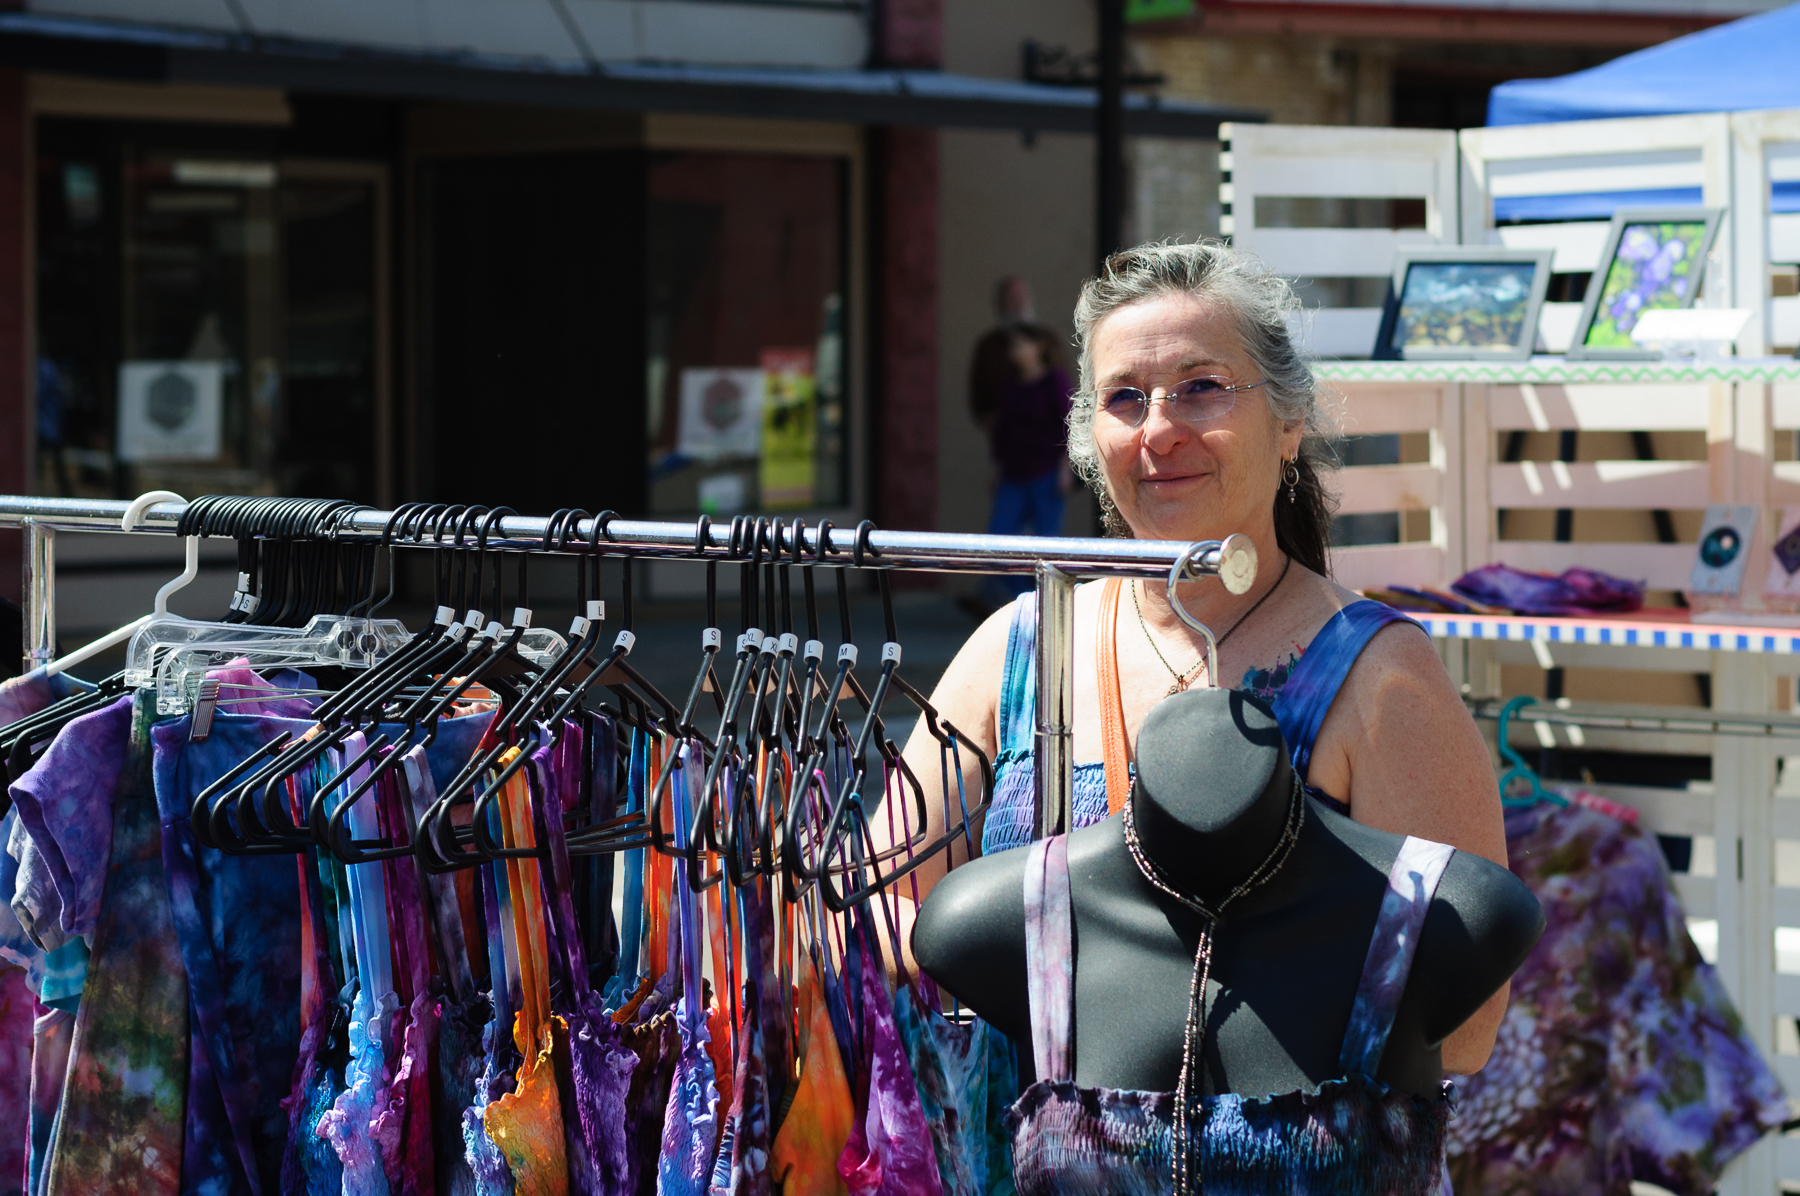 Among the rows of vendors was Cat Adair selling her garments.  Her genuine enthusiasm for people beamed as she welcomed you.